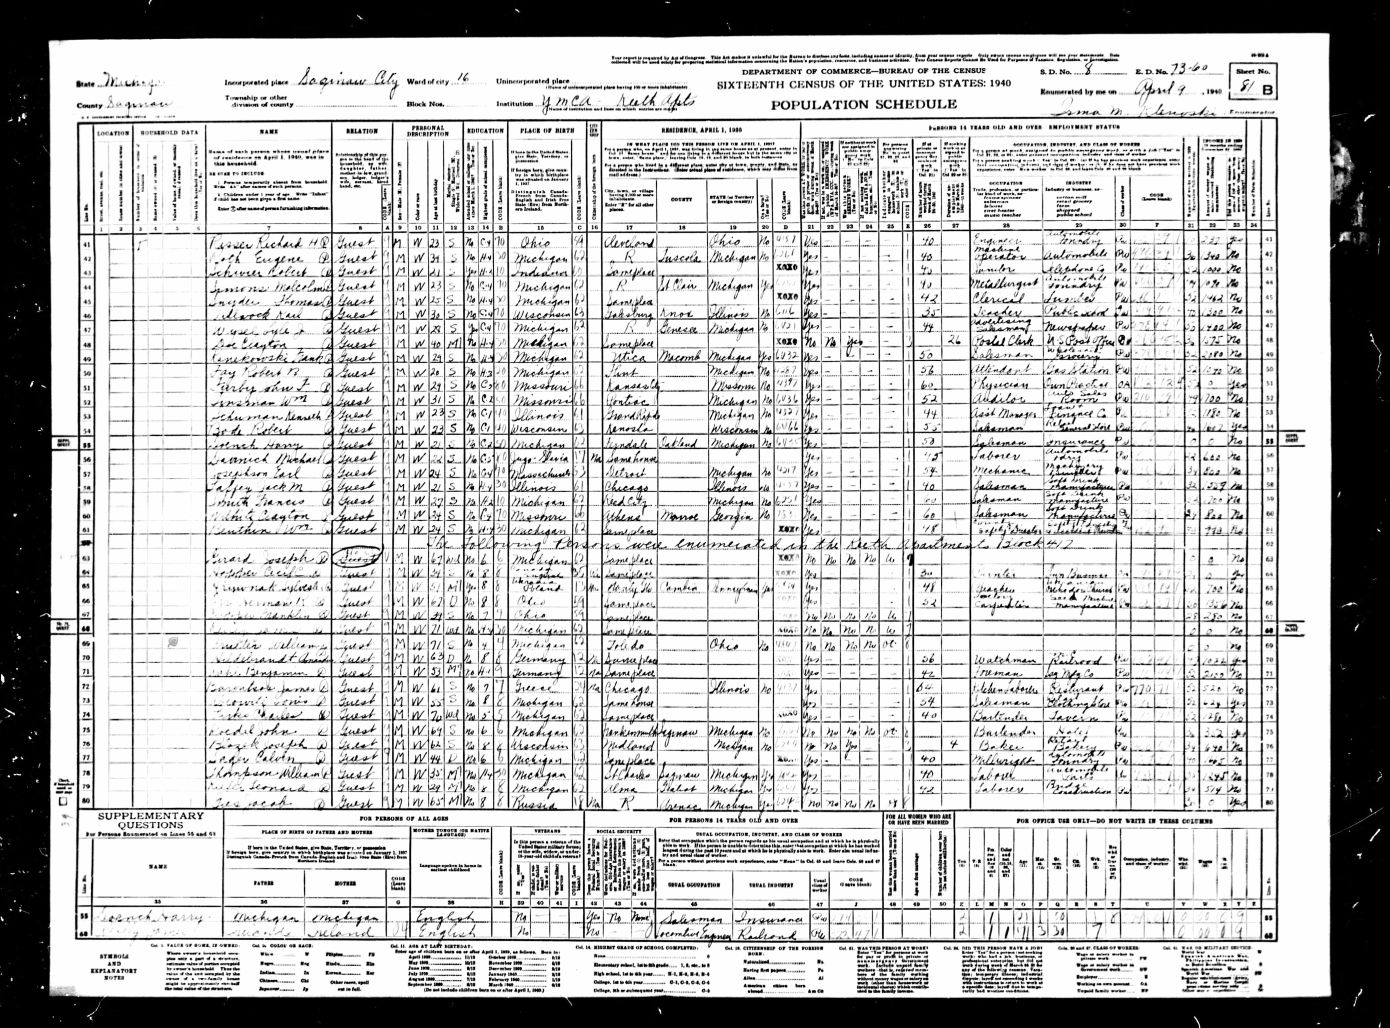 1940 United States Federal Census - Jacob Gies